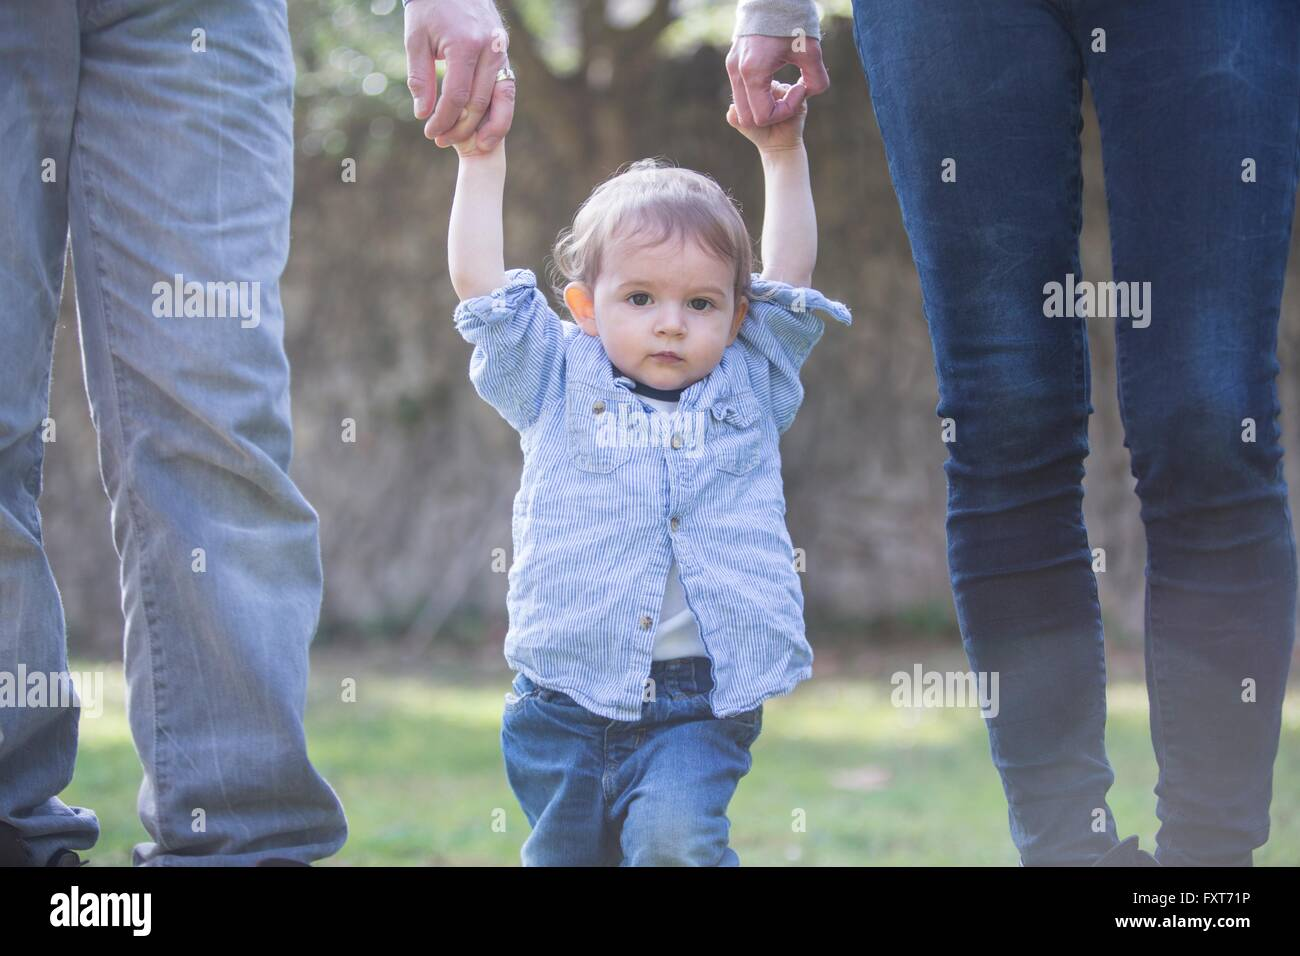 Low section of parents holding baby boys hands - Stock Image